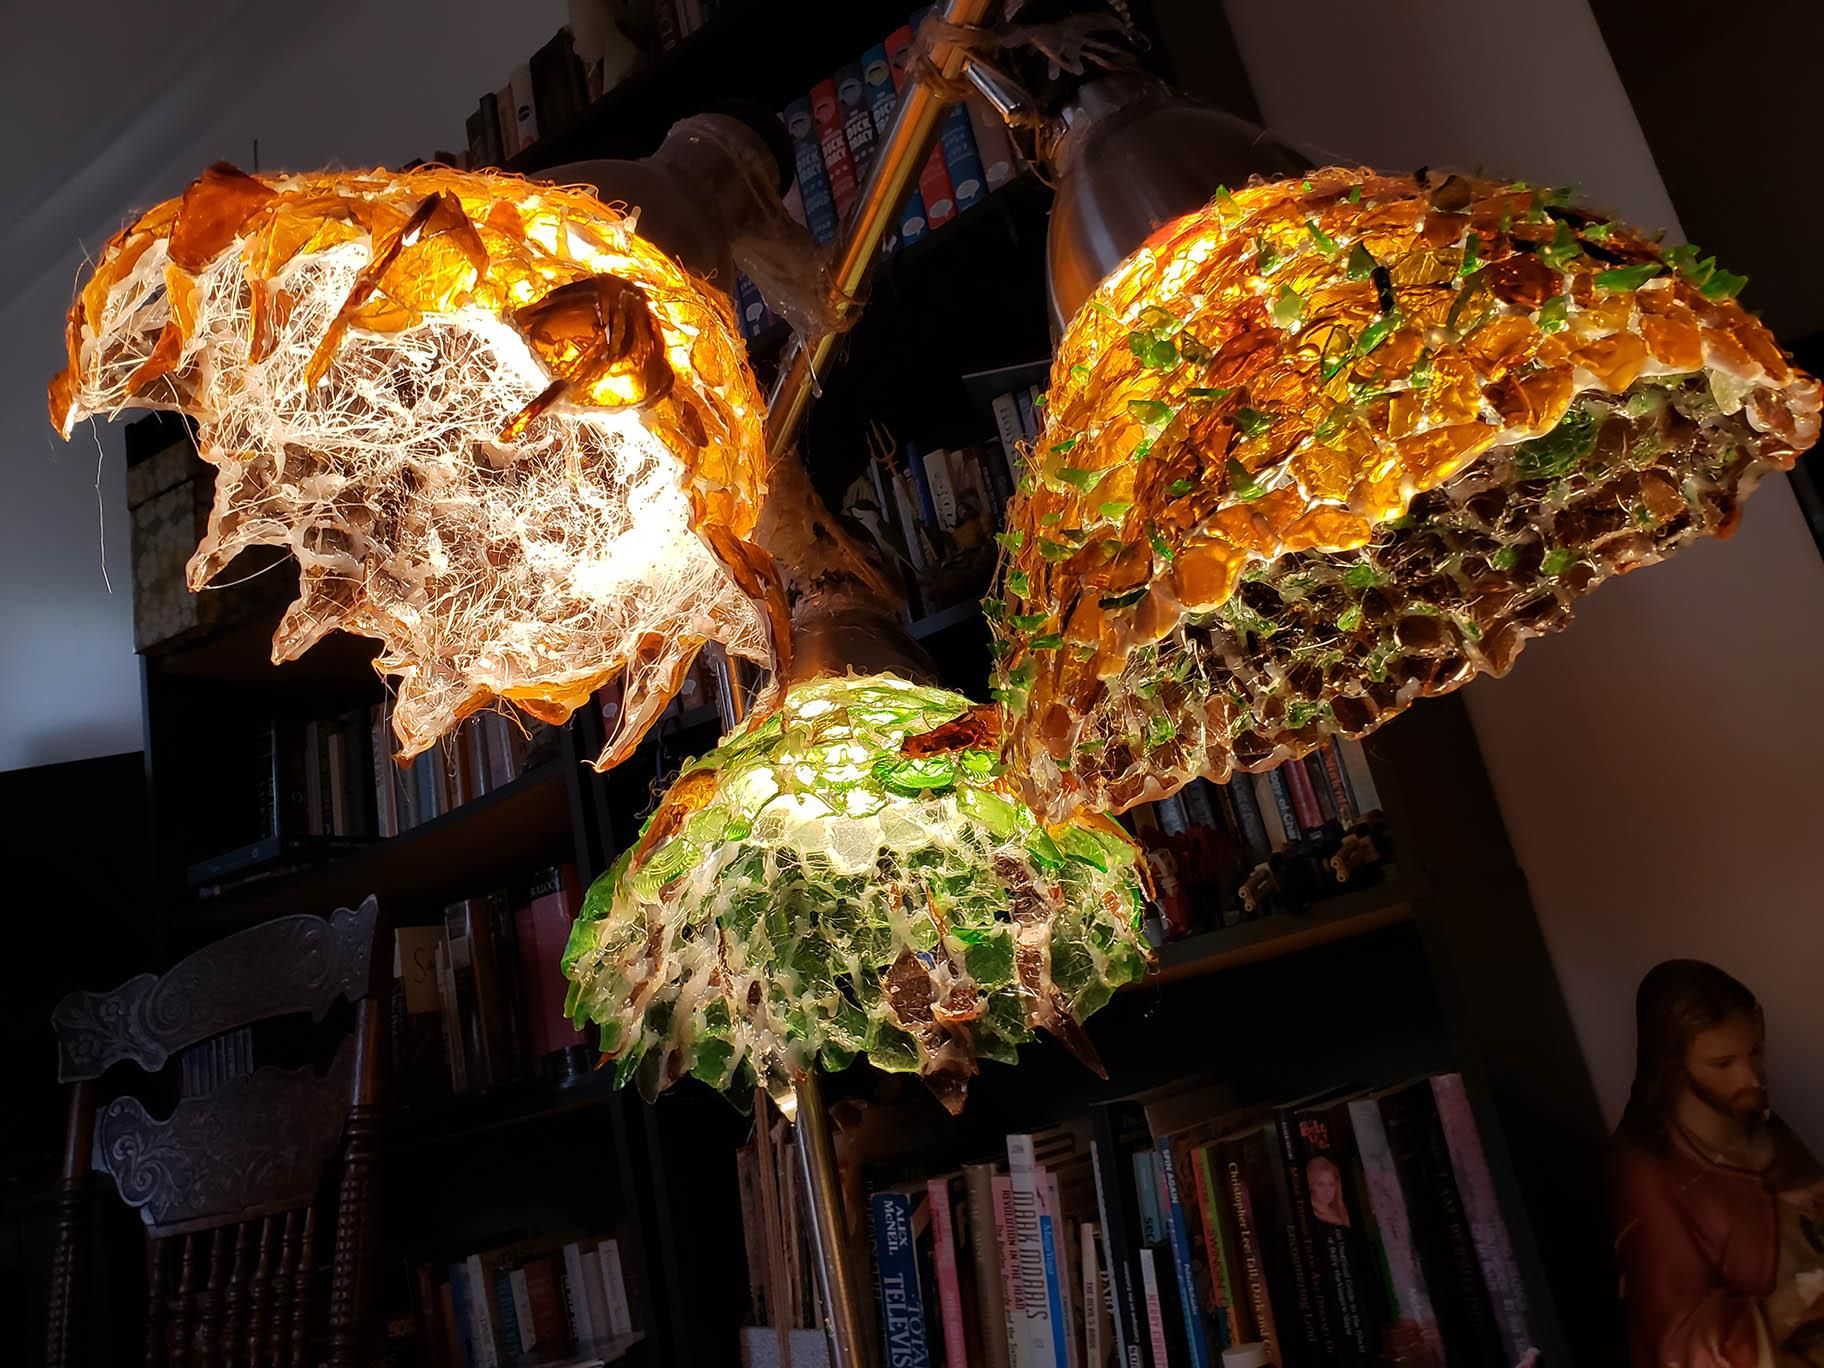 Sea glass LED lamp. (Courtesy of Zac Lowing)